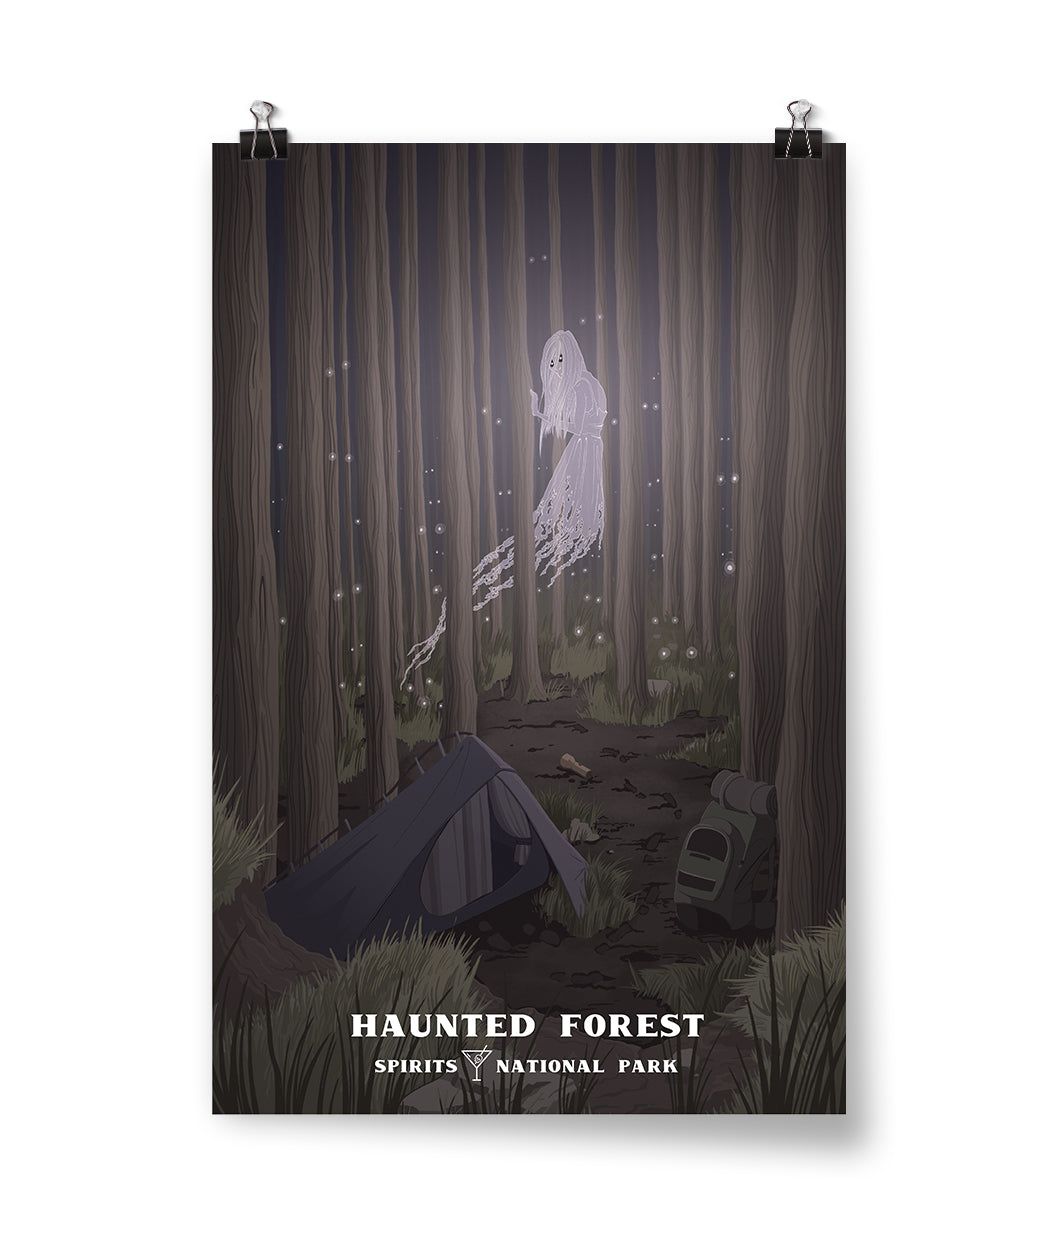 Haunted Forest Spirits National Park Poster